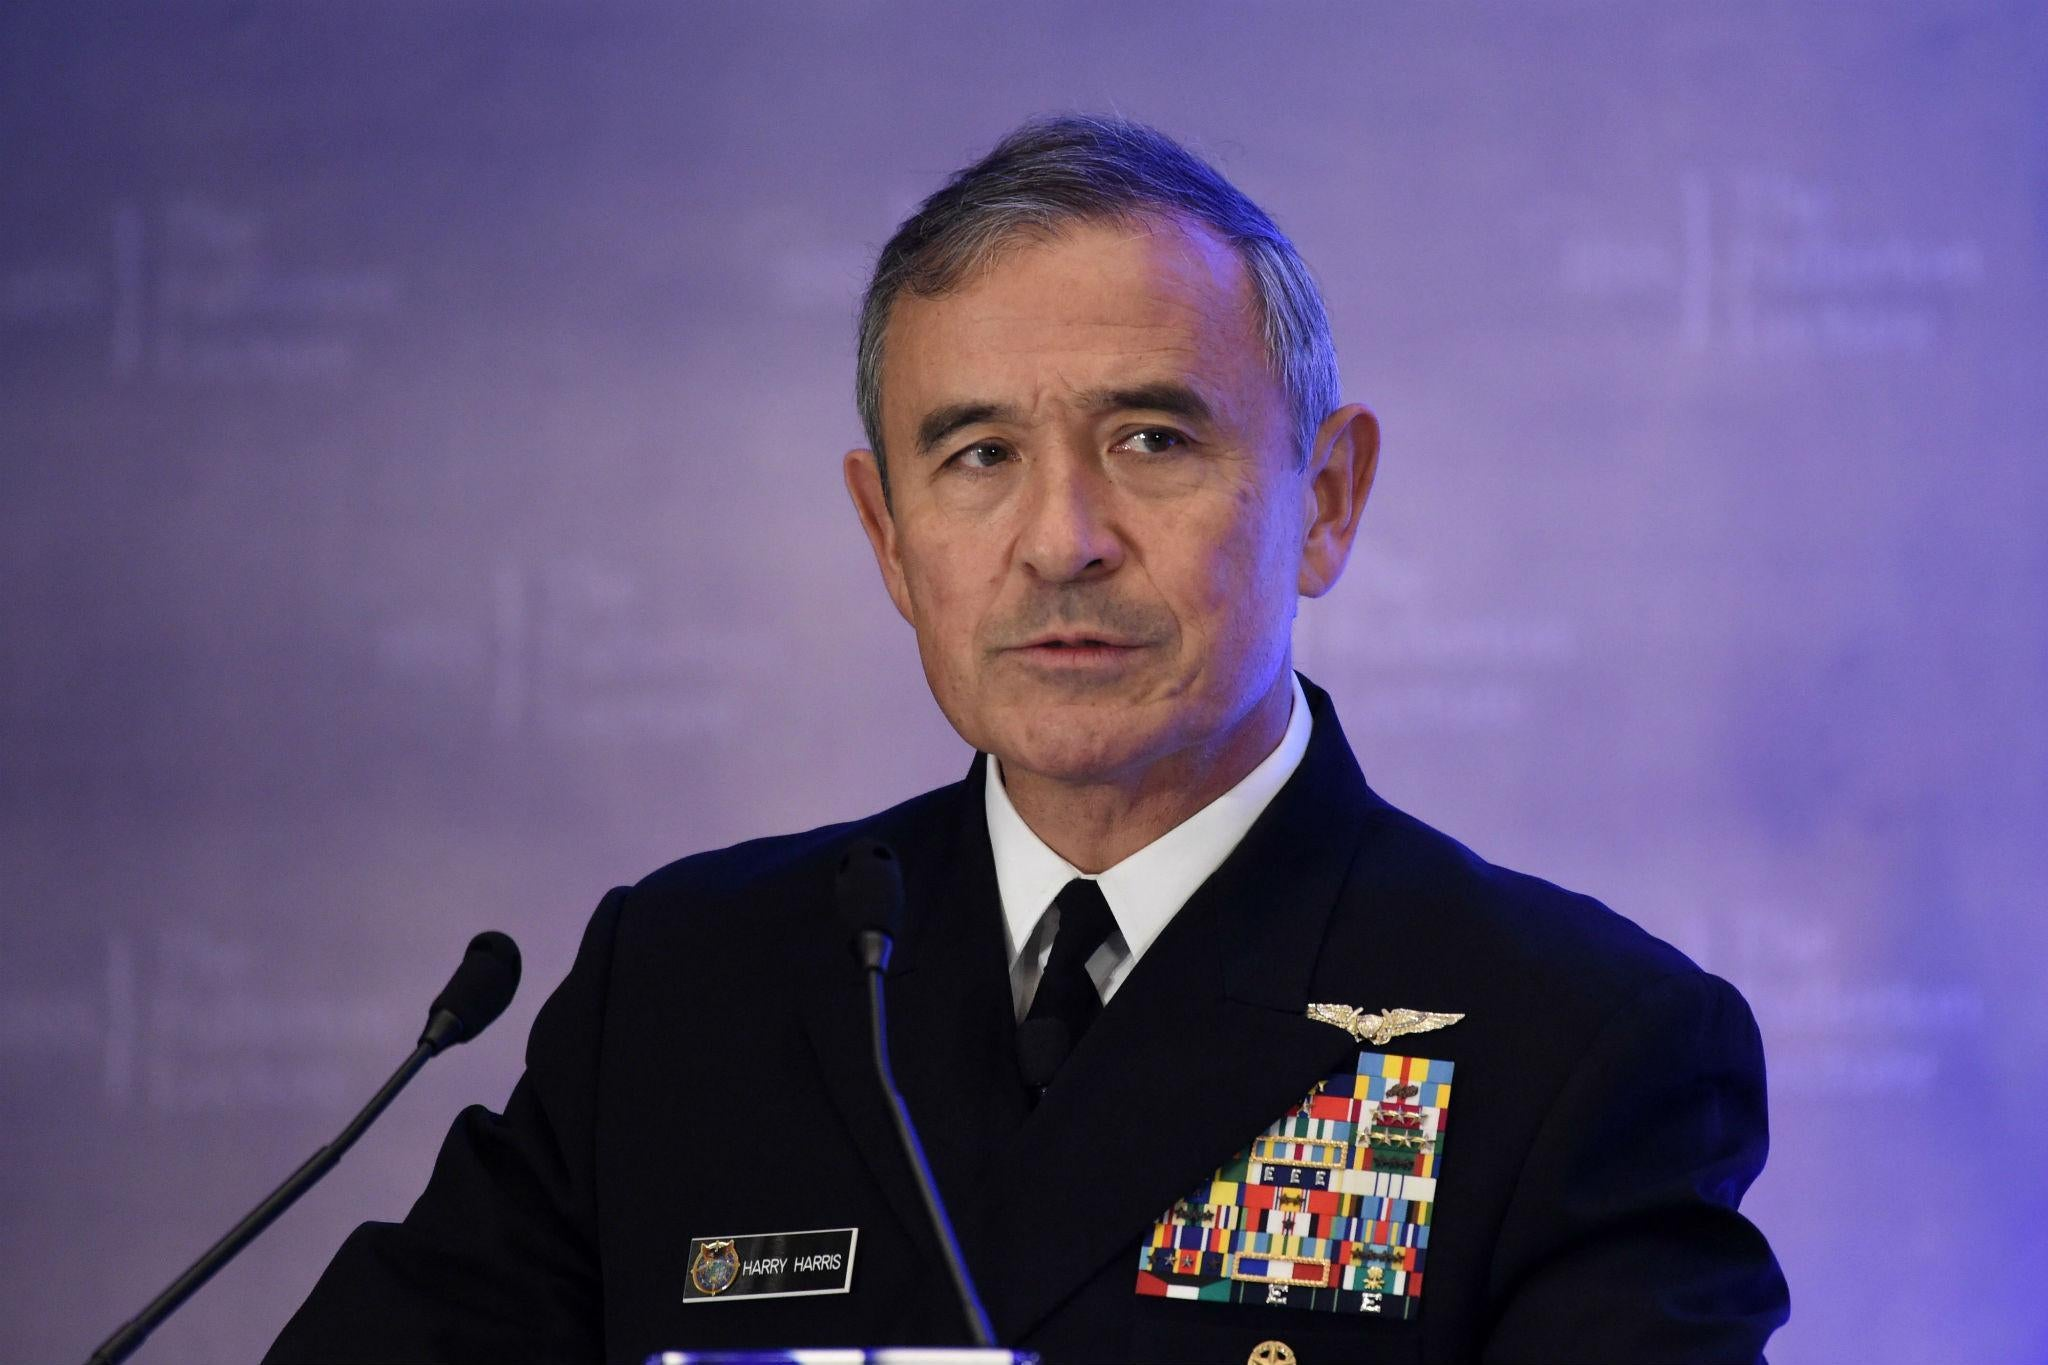 US will struggle to 'keep pace' with Chinese military if it does not invest, senior admiral warns